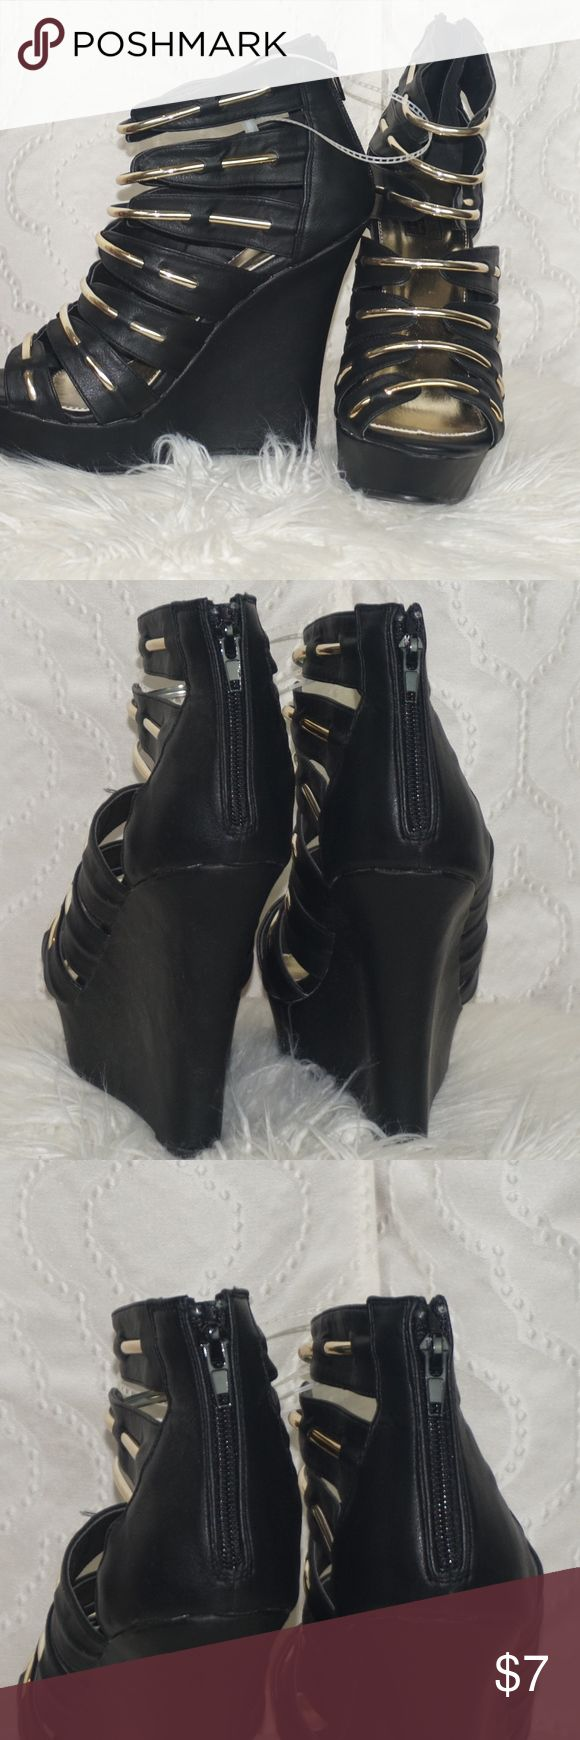 Black and Gold Wedge Heels These black and gold beautiful wedge heels have never been worn( only tried on )  They are definitely a showstopper! Shoes Wedges